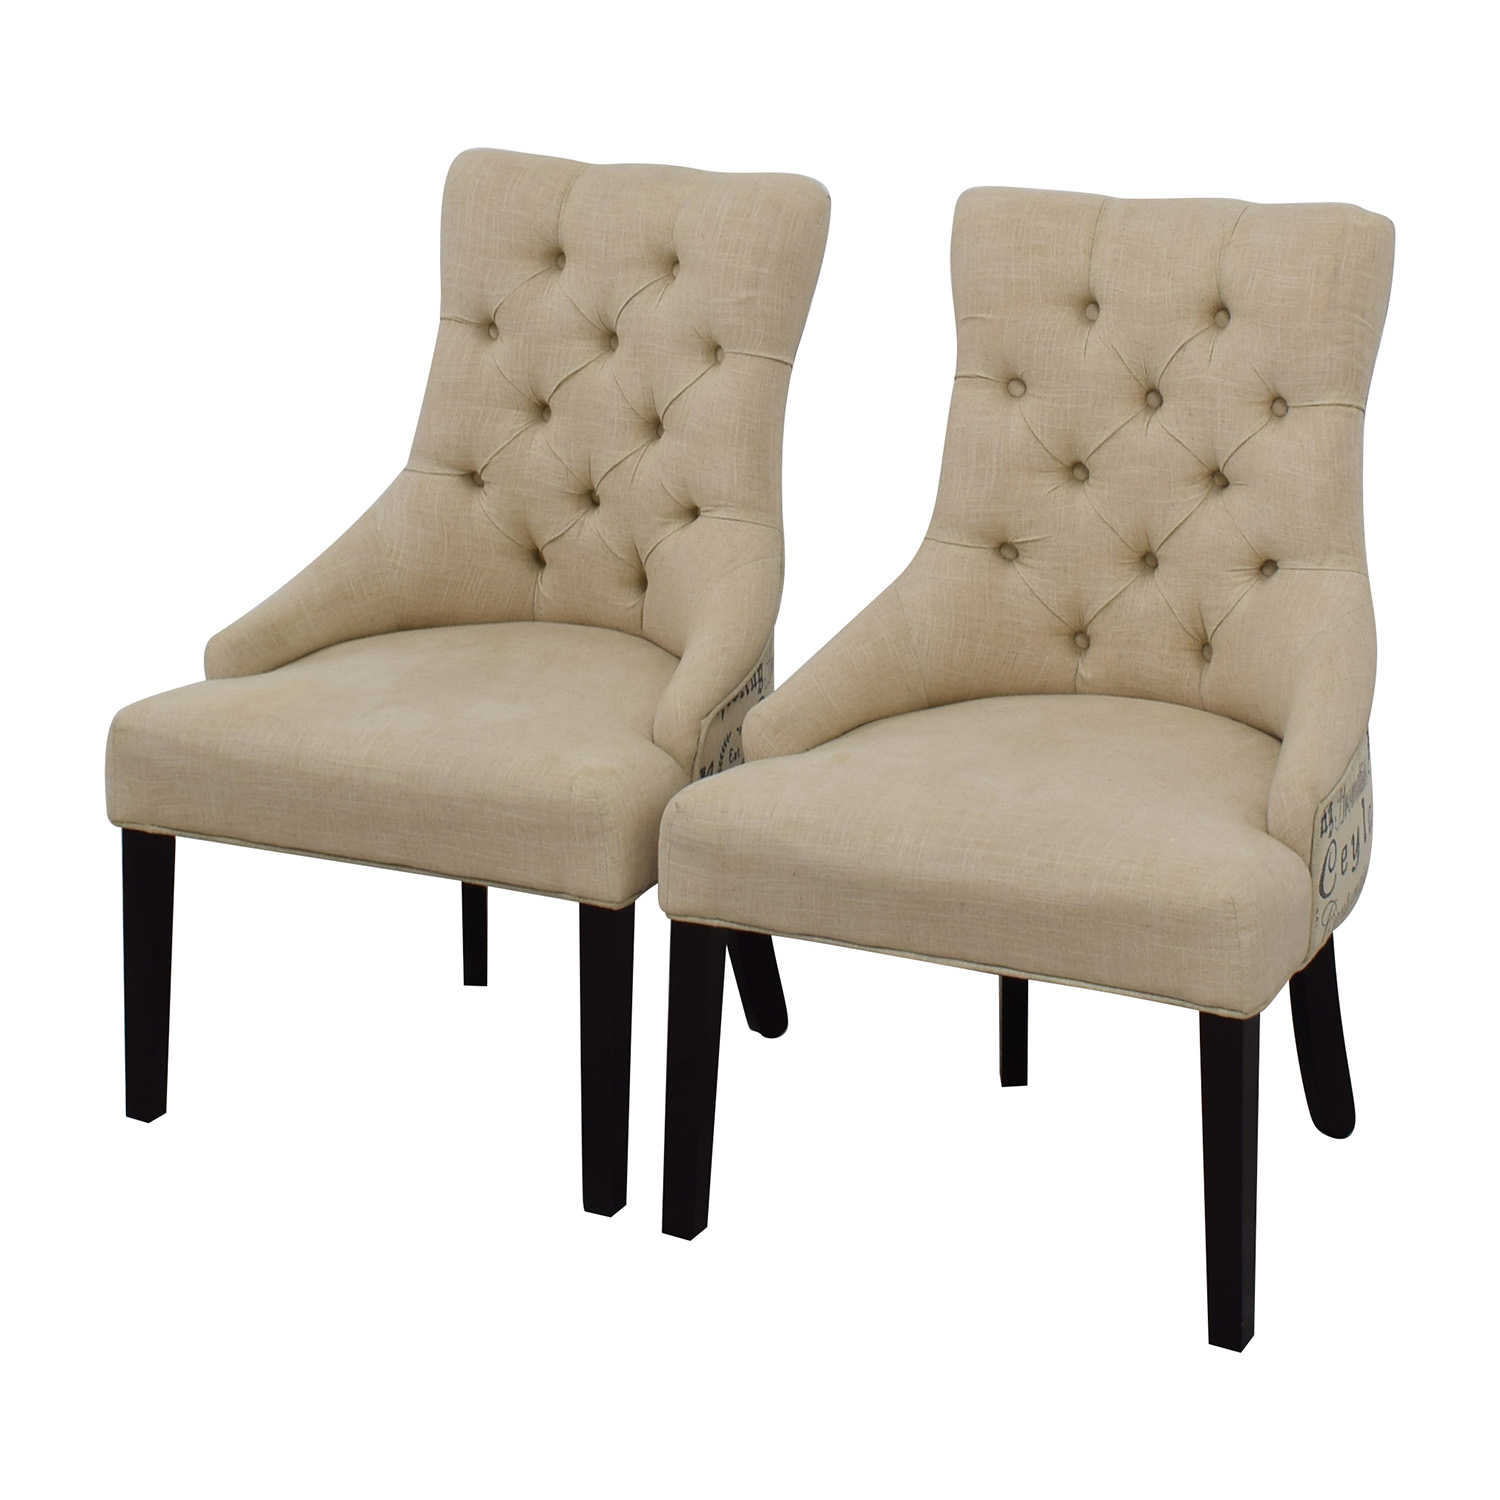 Raymour & Flanigan Raymour & Flanigan White Tufted Chairs for sale